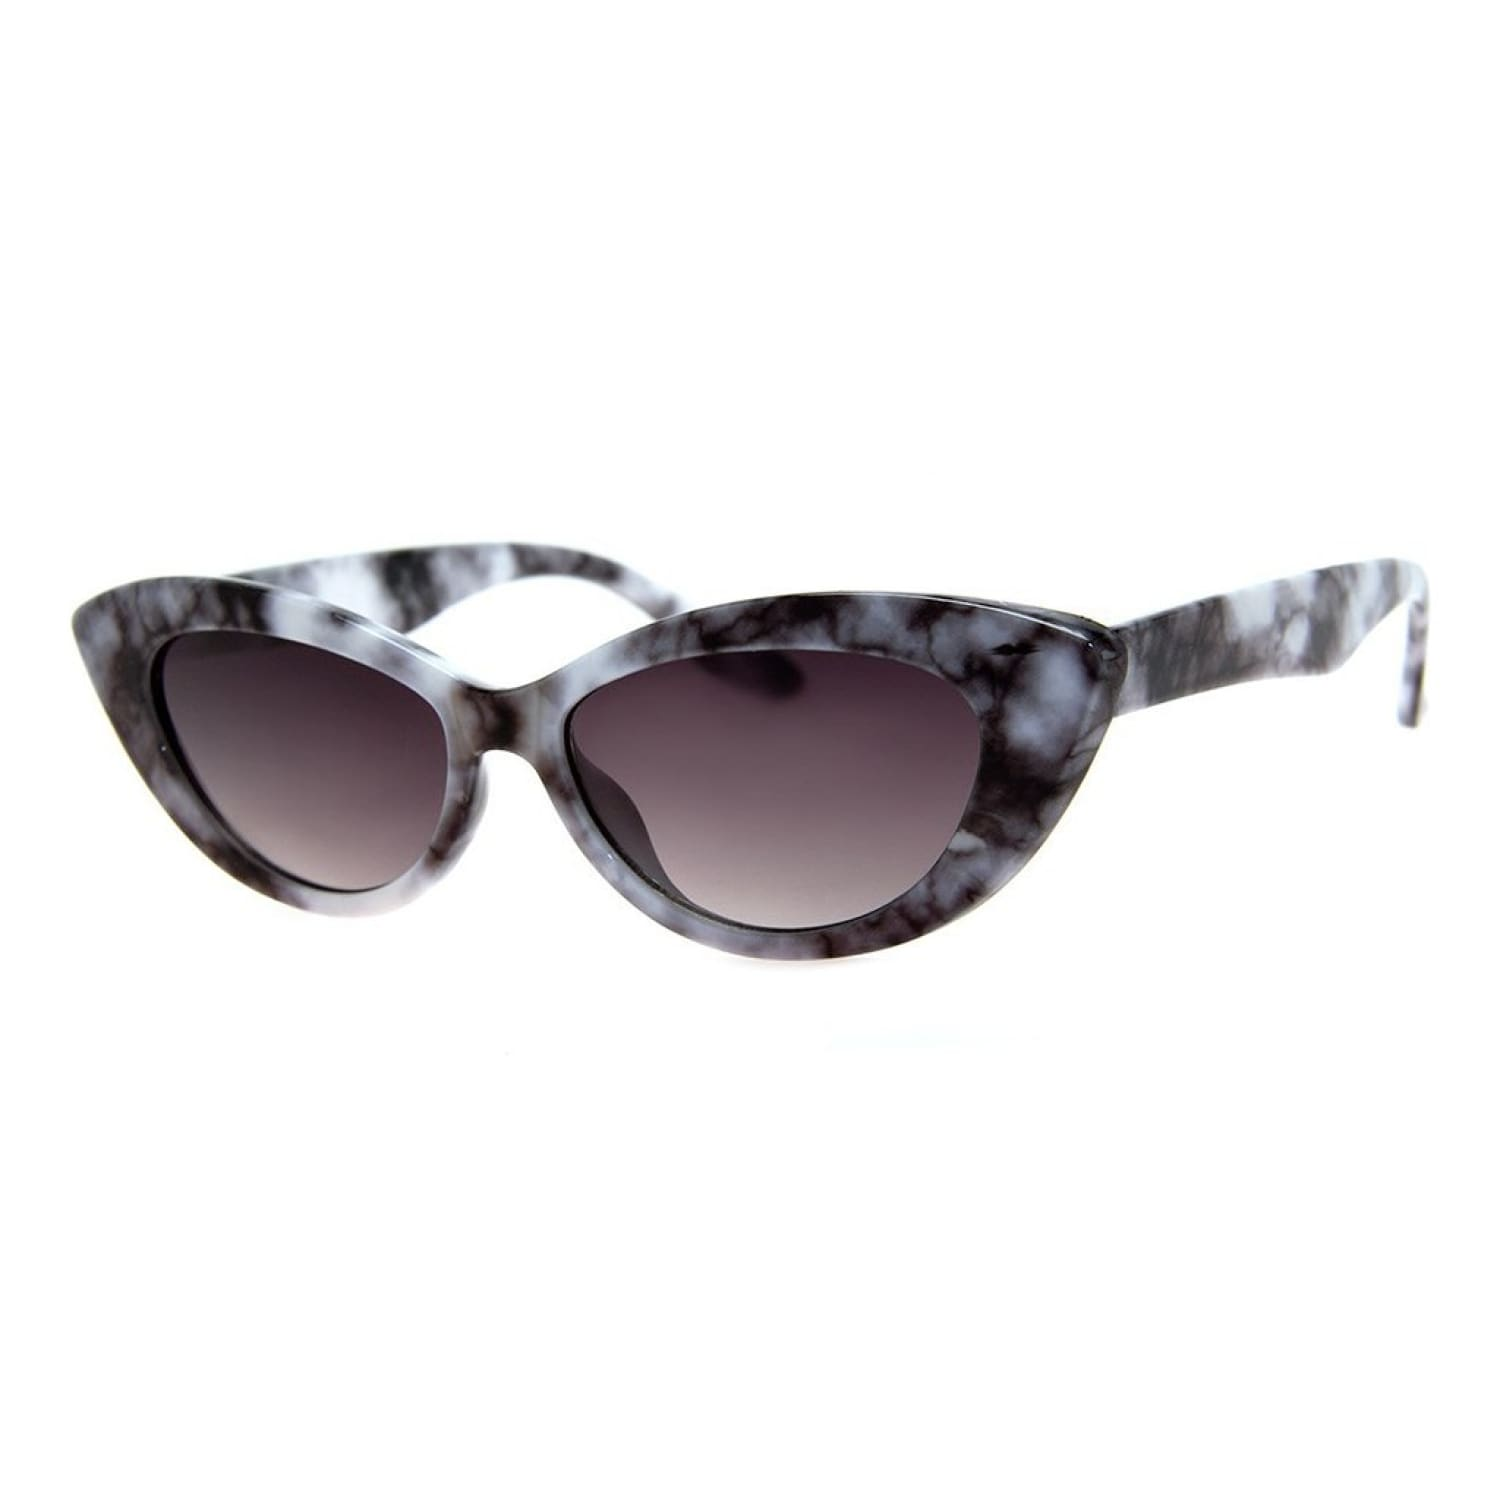 Marbled Cat Eye Sunglasses 90s, Accessories, Black, Cat Eye,